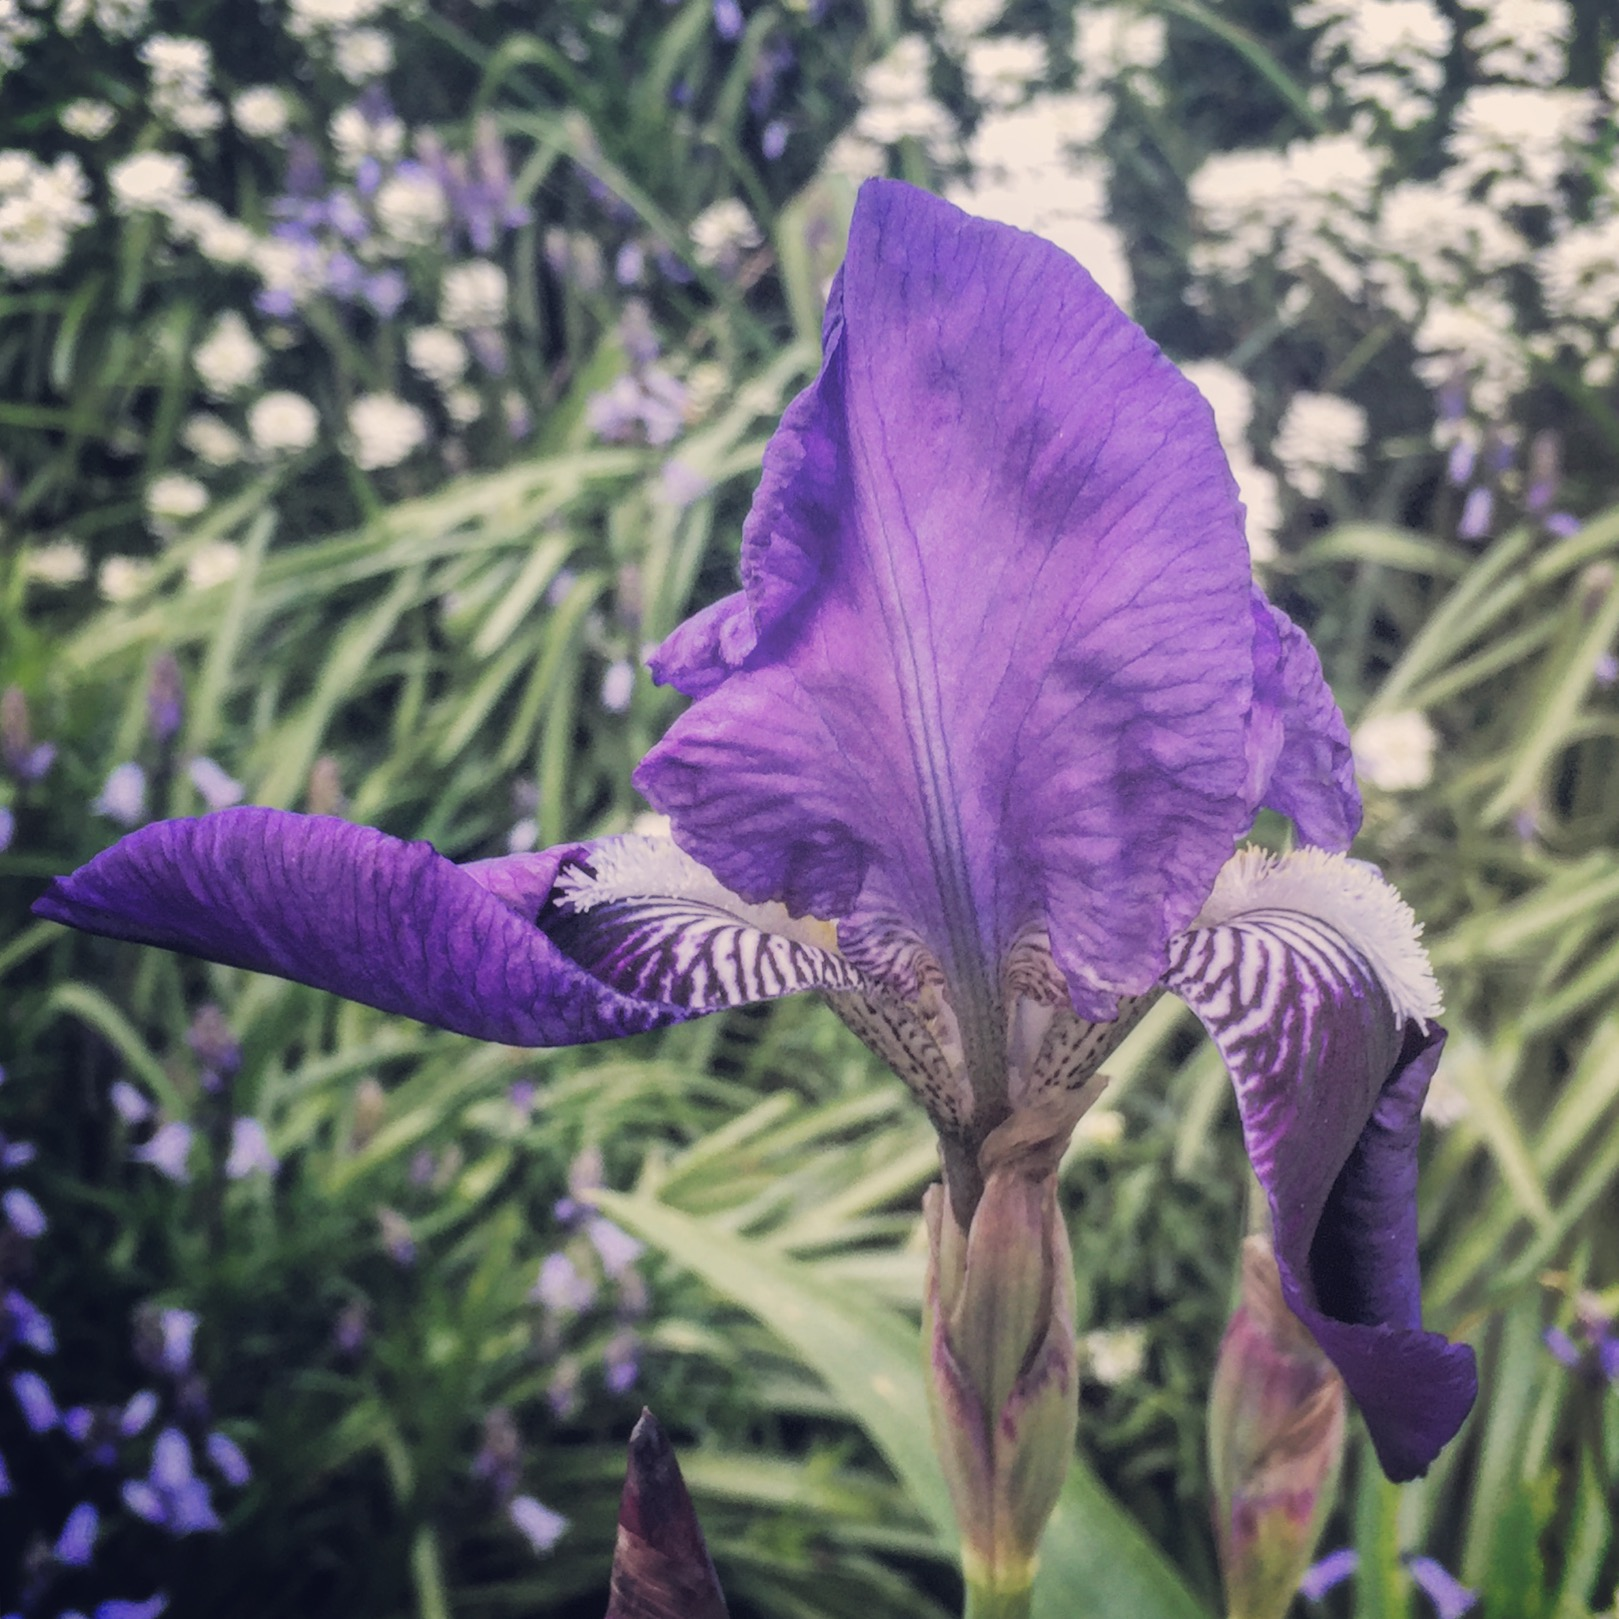 The iris flower in all its purple and white glory.